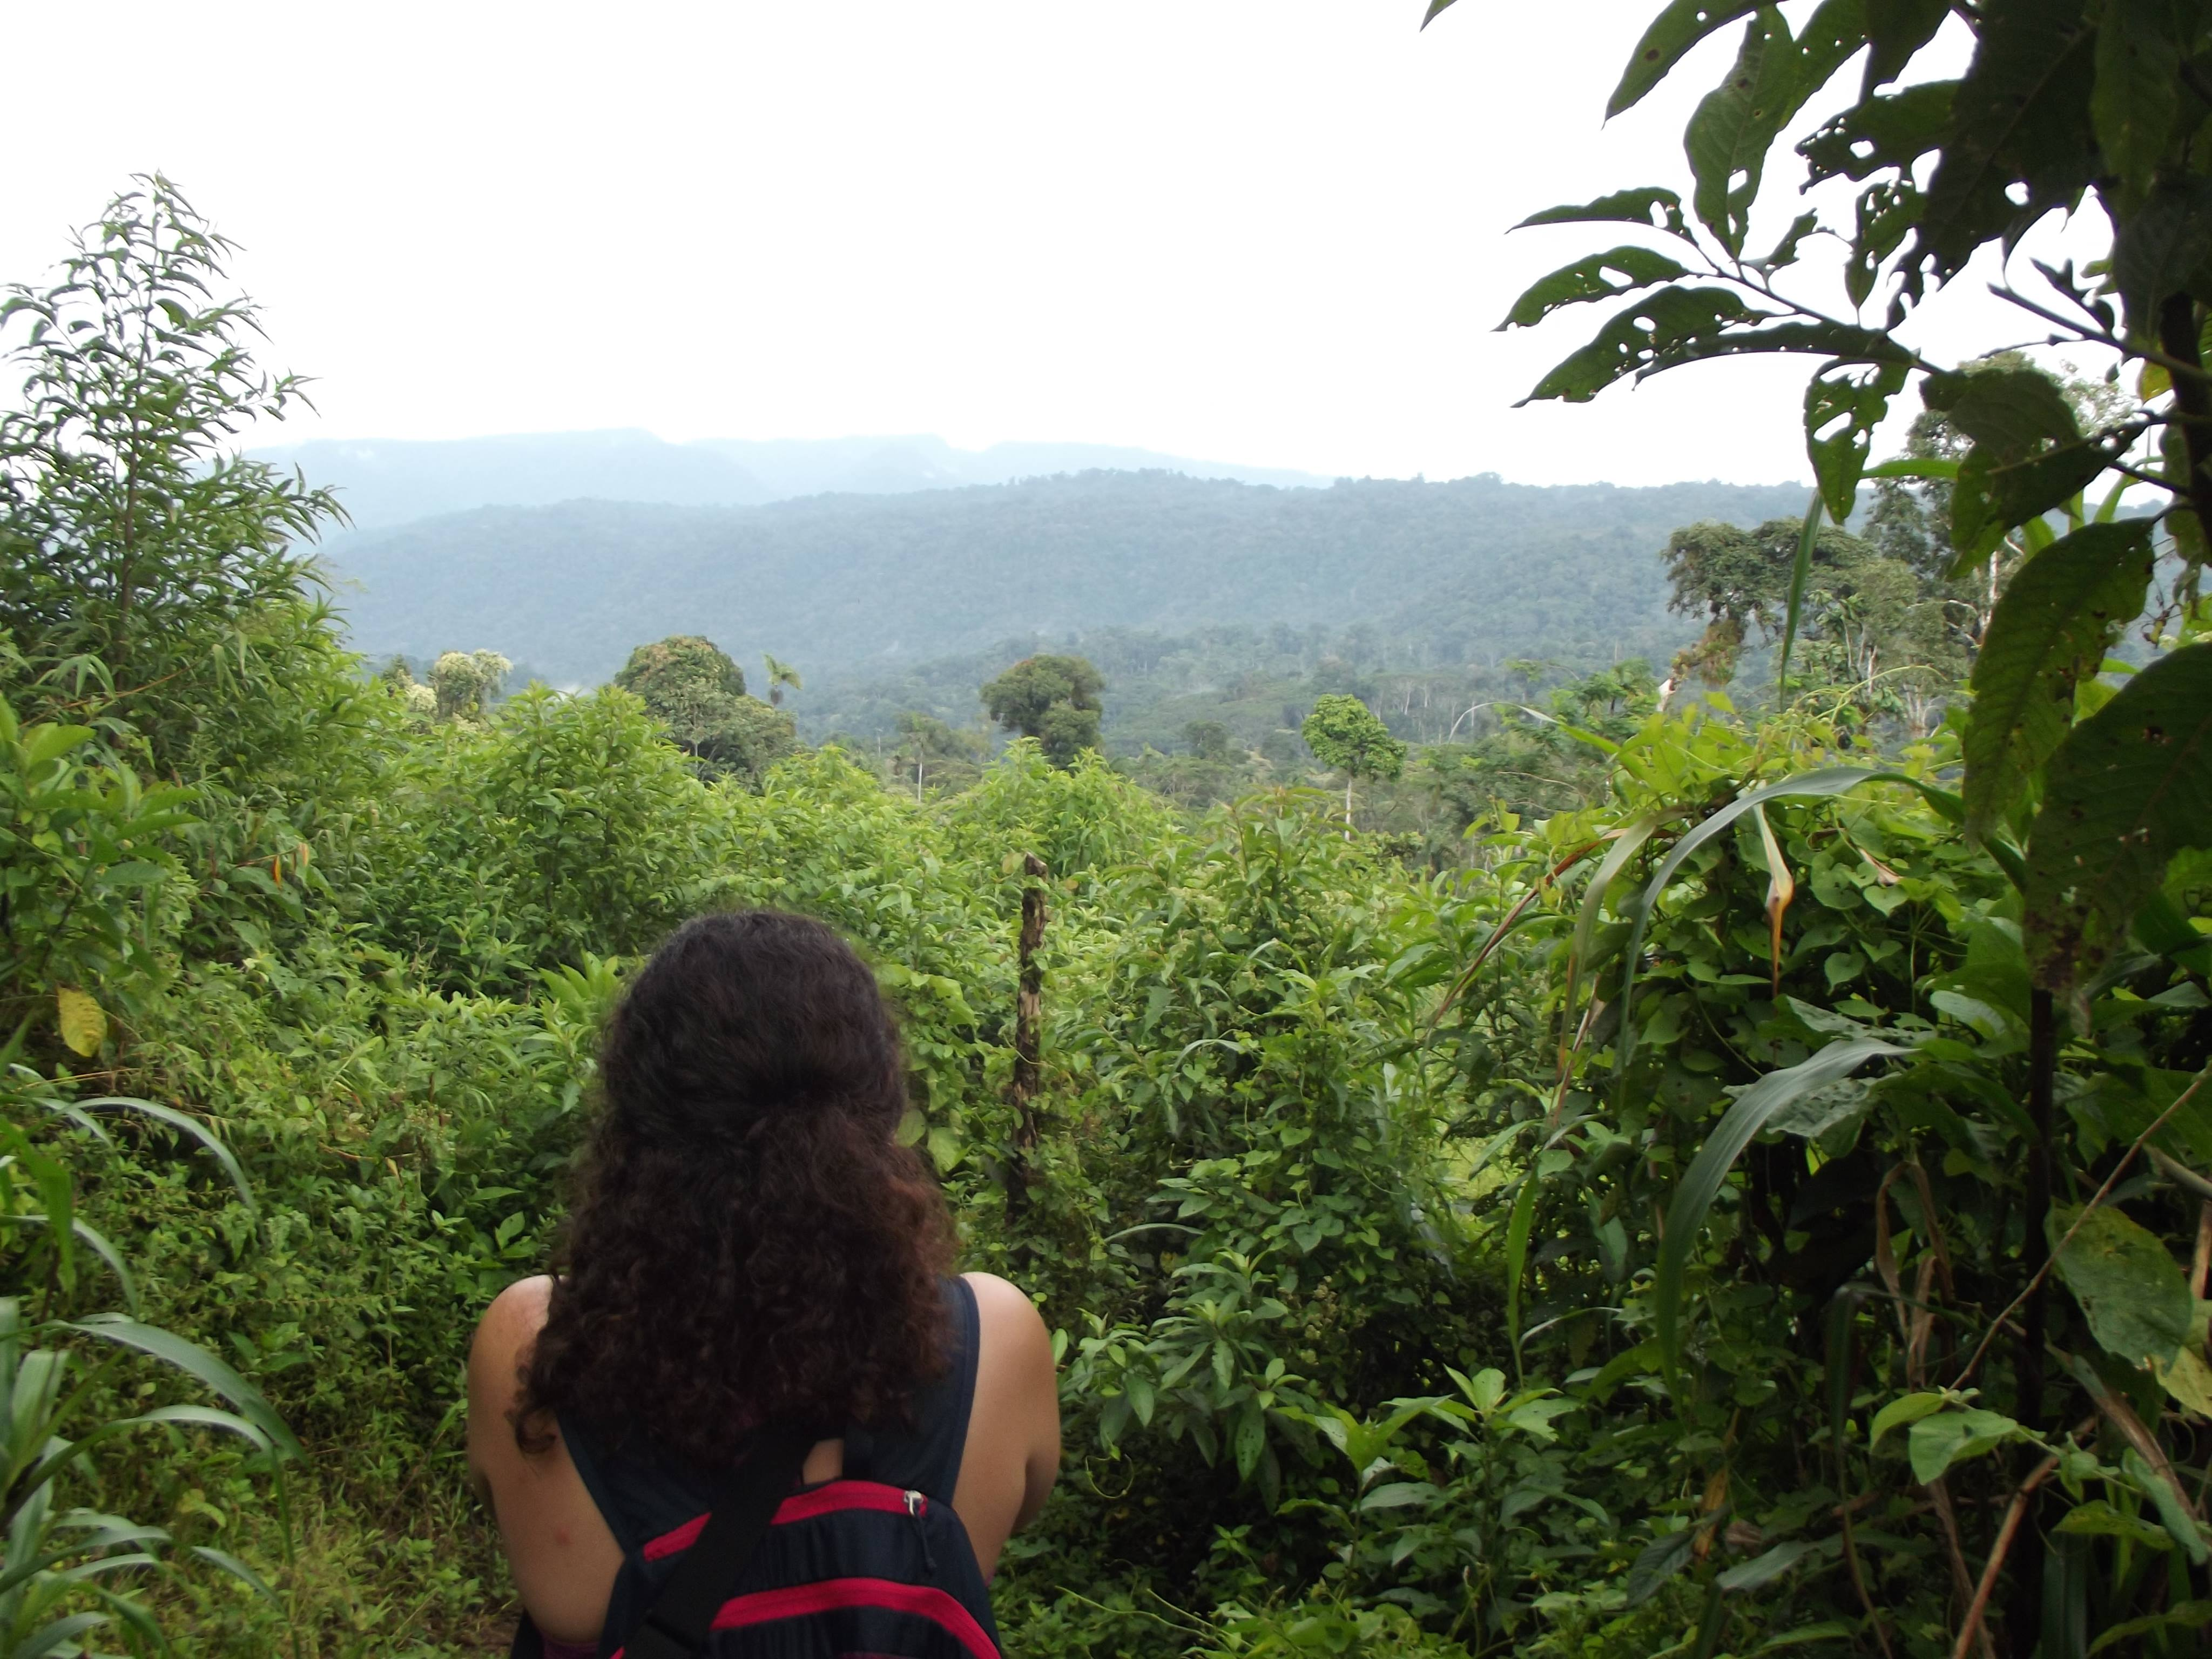 Agroforestry & Environmental Development Internships in Ecuador